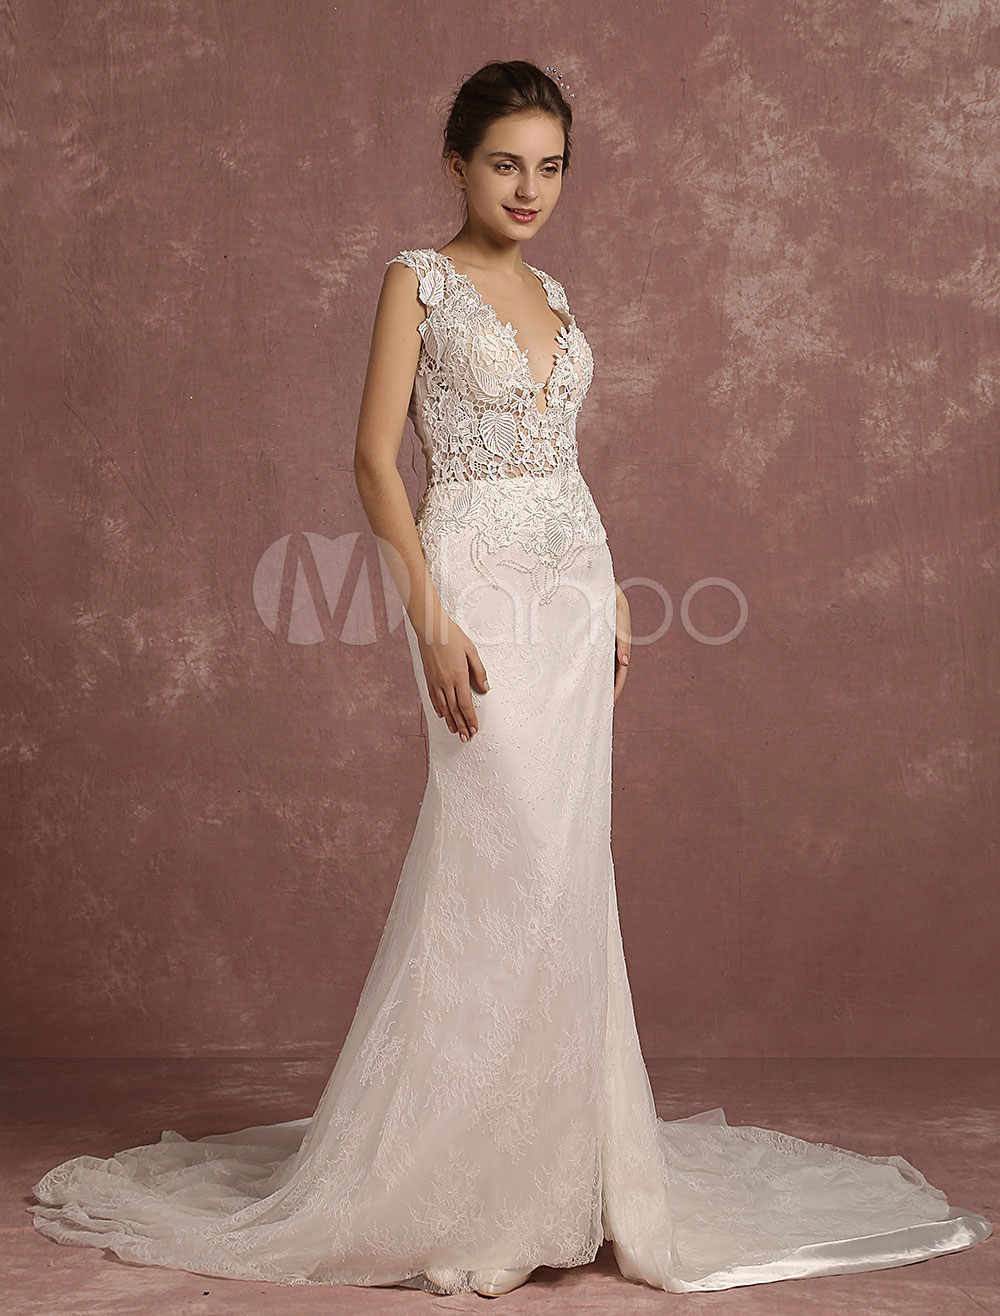 Mermaid Wedding Dress V-Neck Illusion Lace Beading Chaple Train Bridal Dress